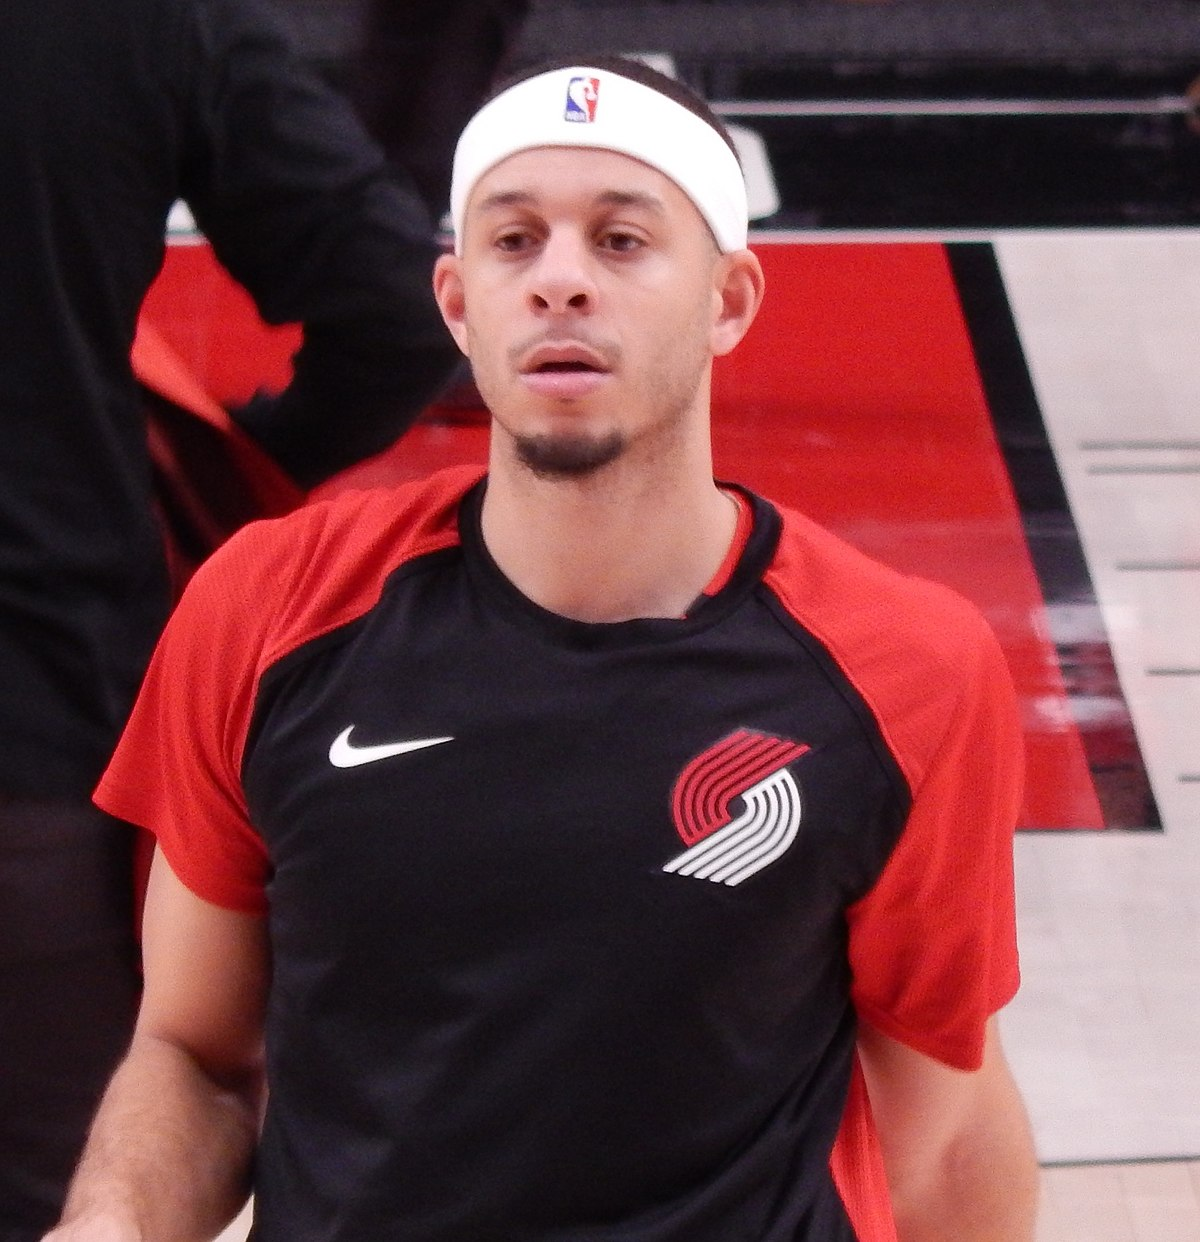 Seth Curry Wikipedia